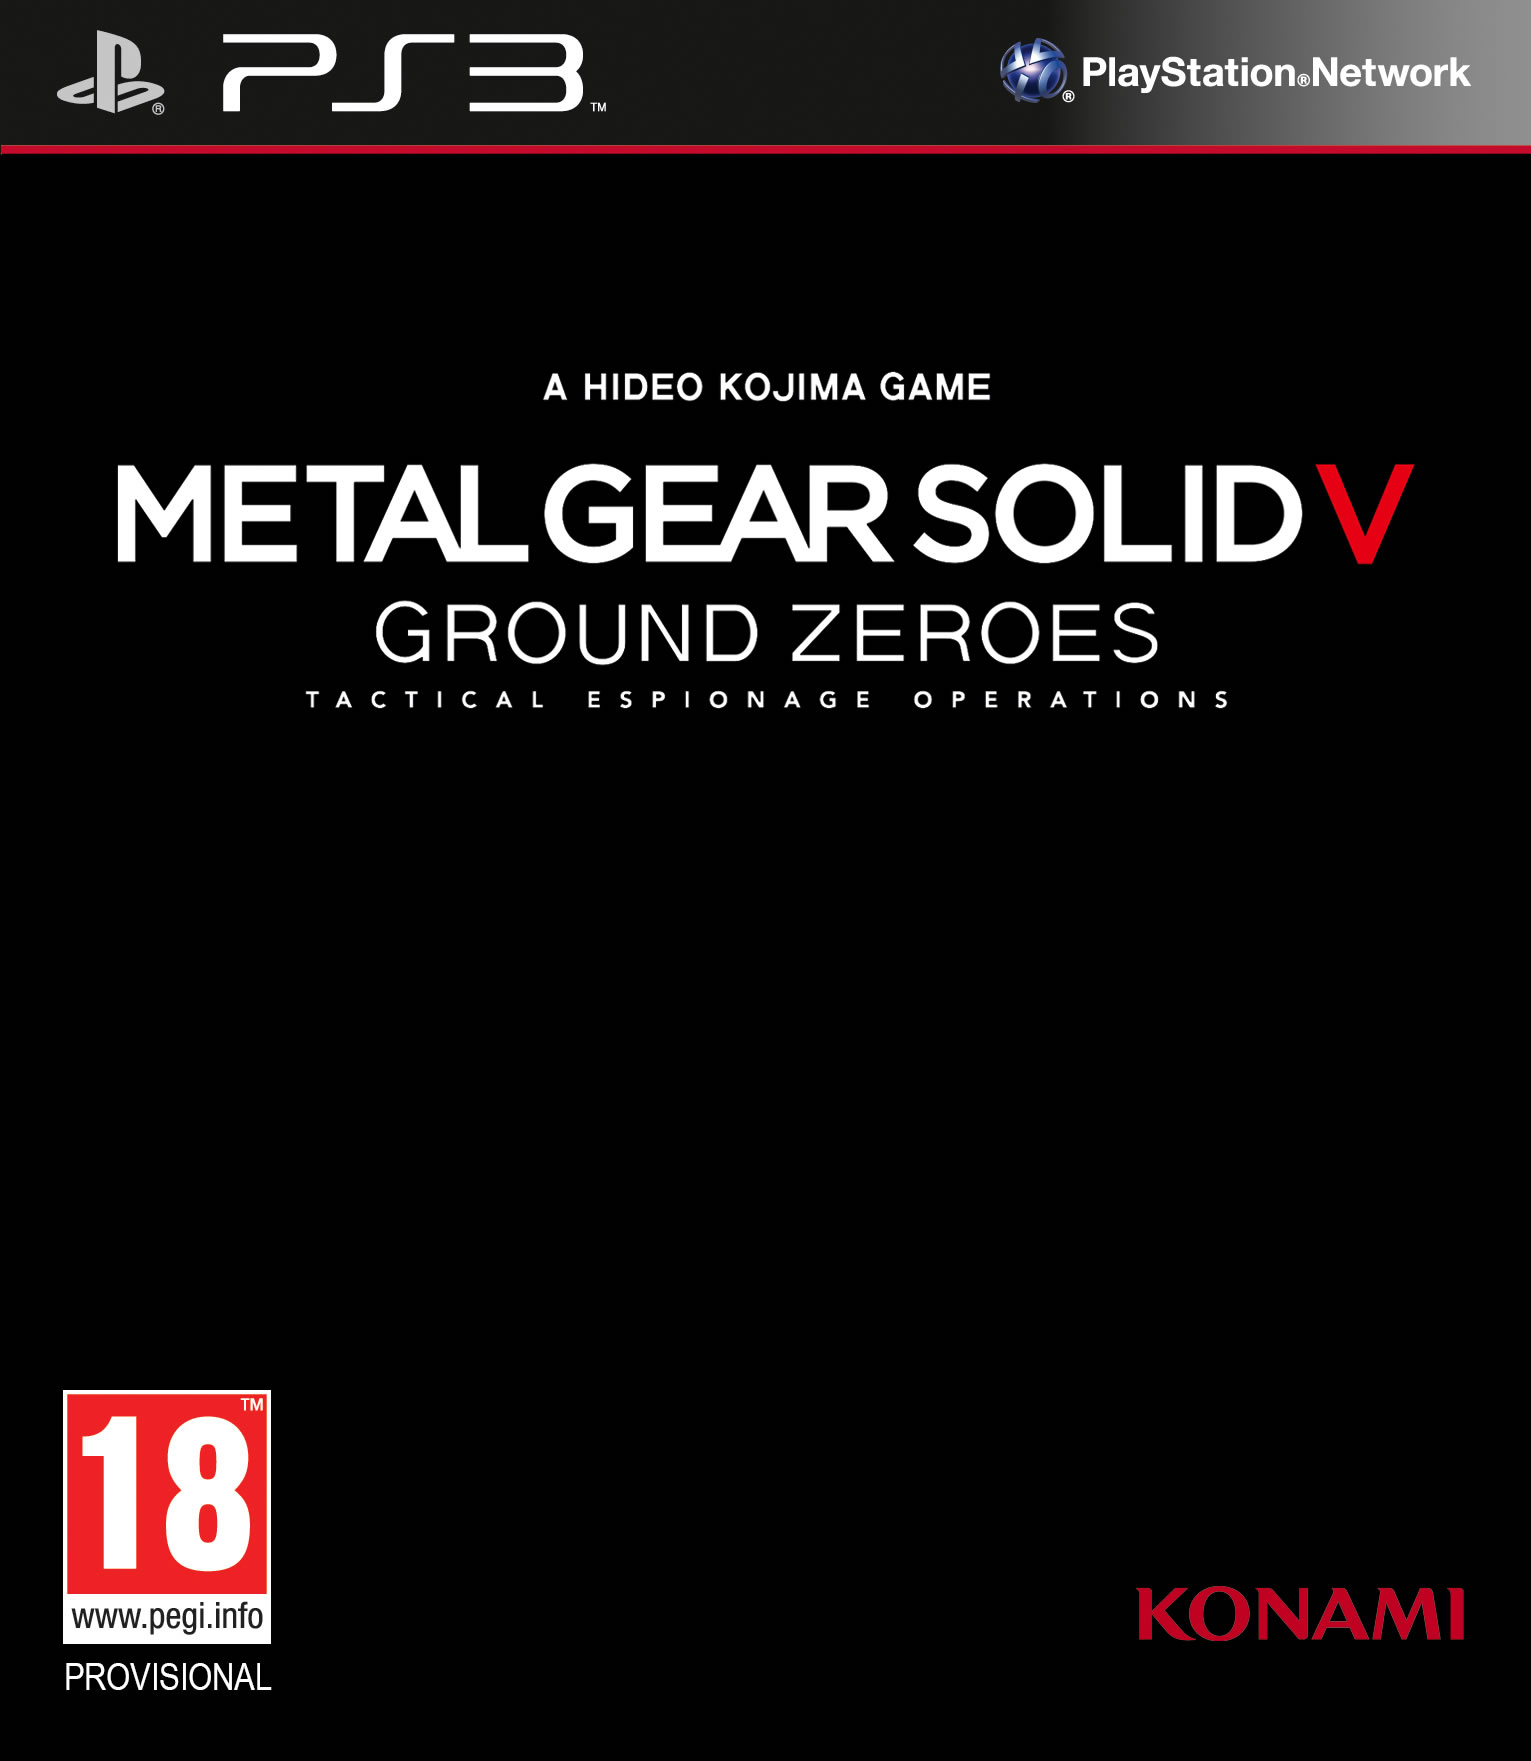 http://www.metalgearsolid.be/images/metal-gear-solid-ground-zeroes-jaquette-ps3-02.jpg